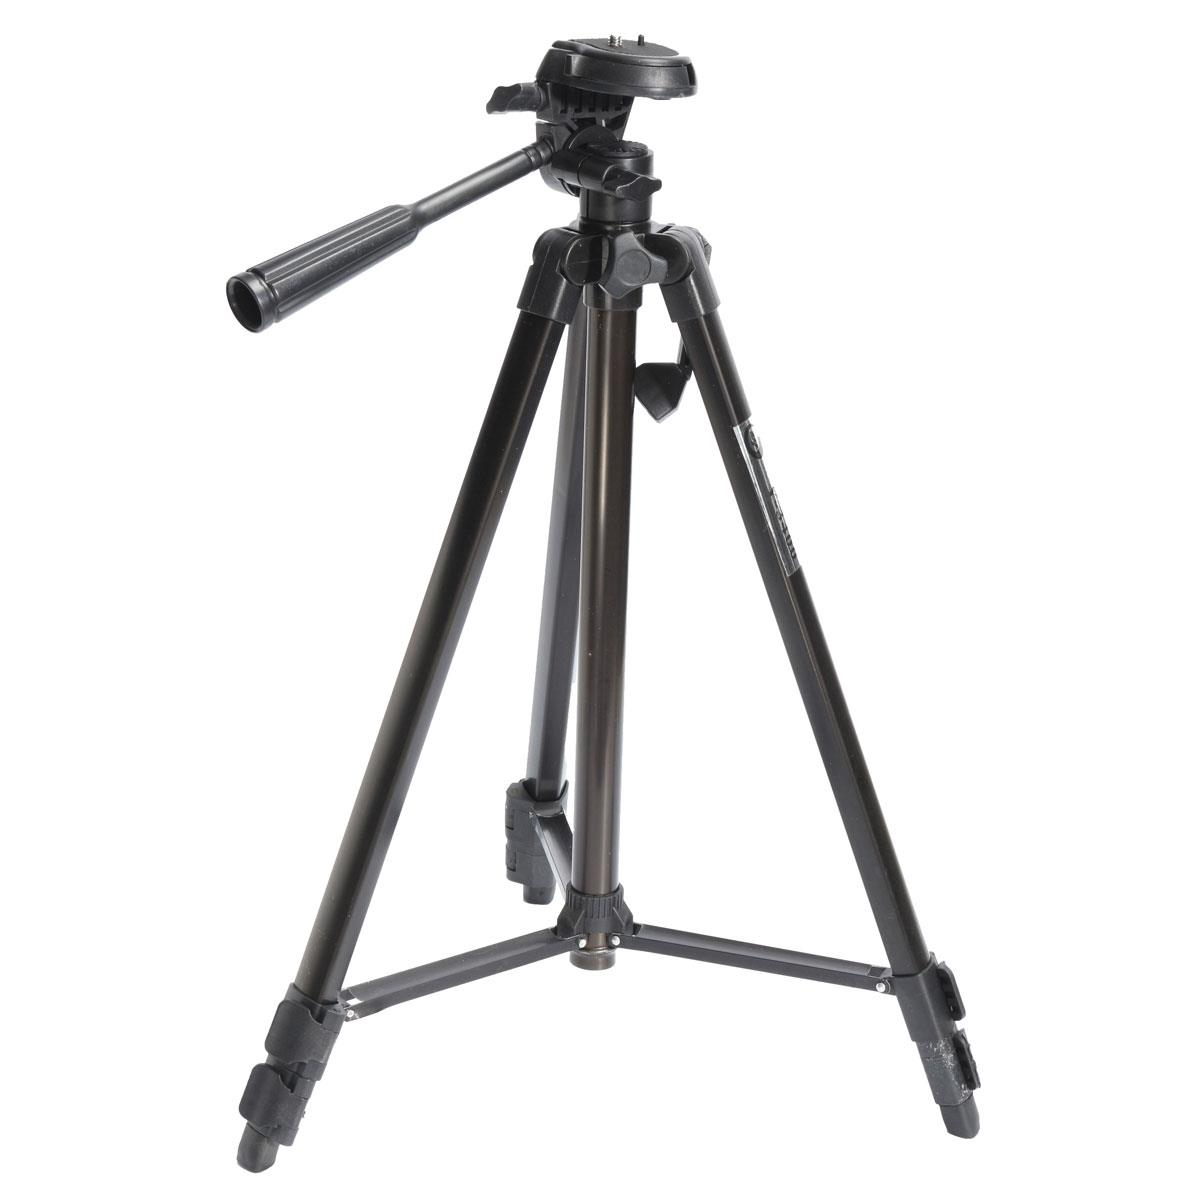 ZHUOYUE 3400 Portable 54 Inch Tripod Stand With 360 Degree